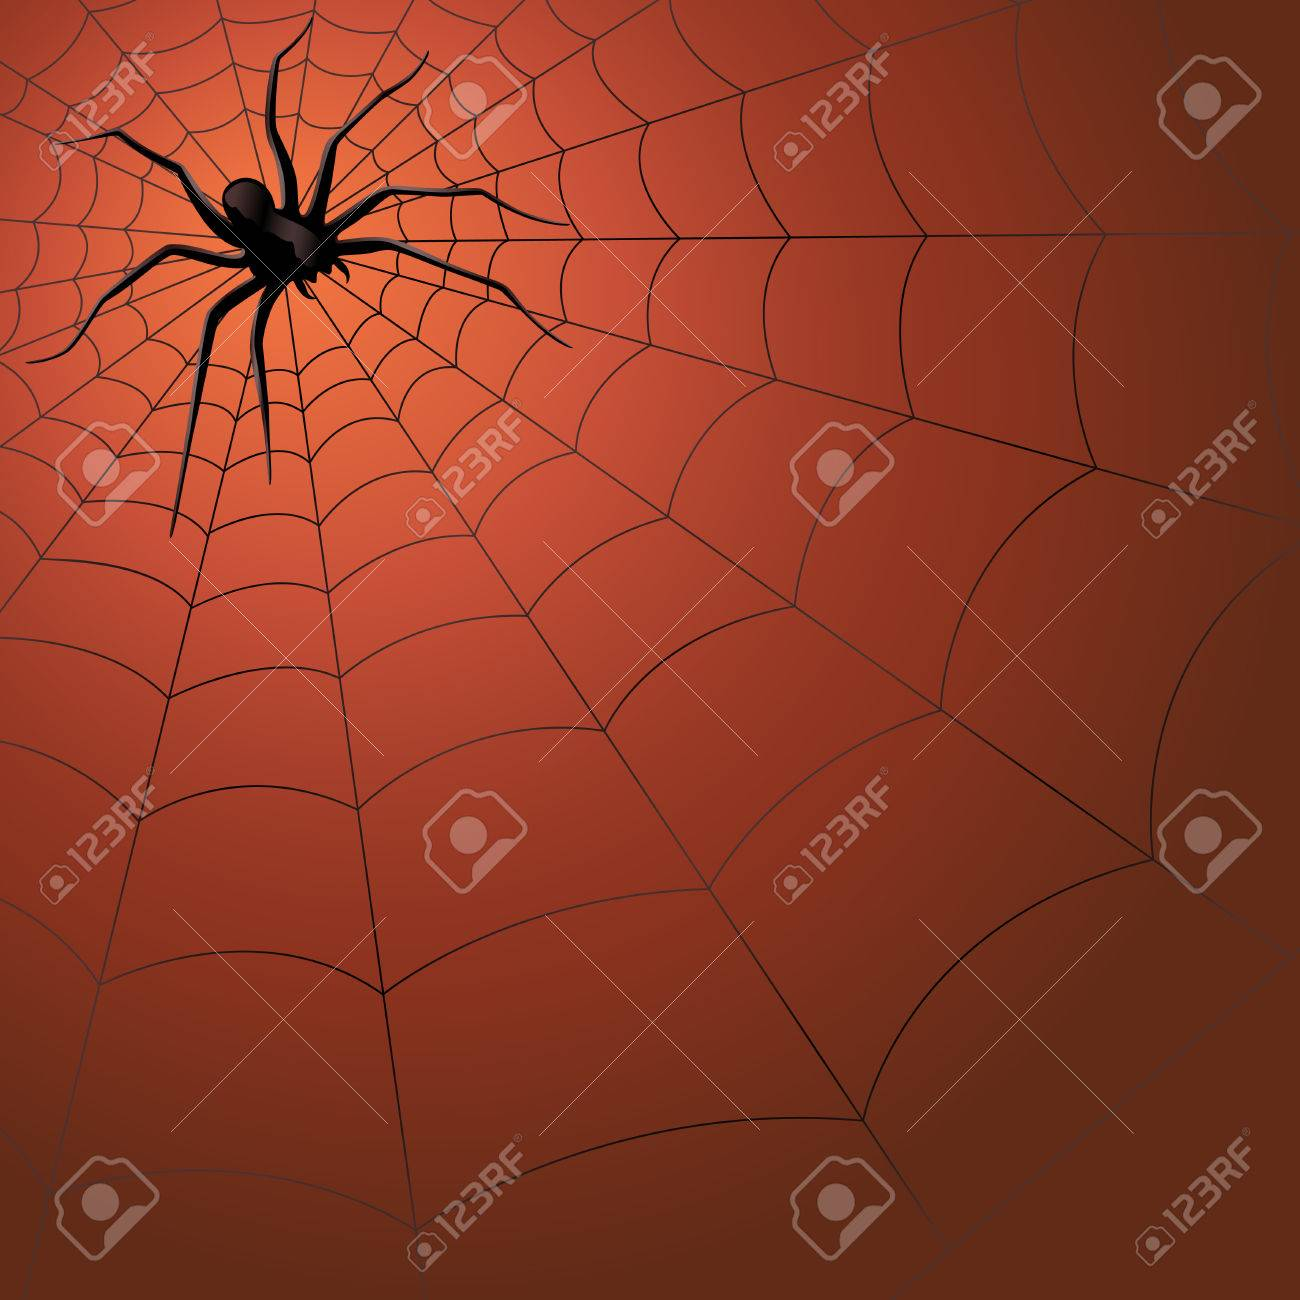 Spiders Web Drawing at GetDrawings.com | Free for personal use ...